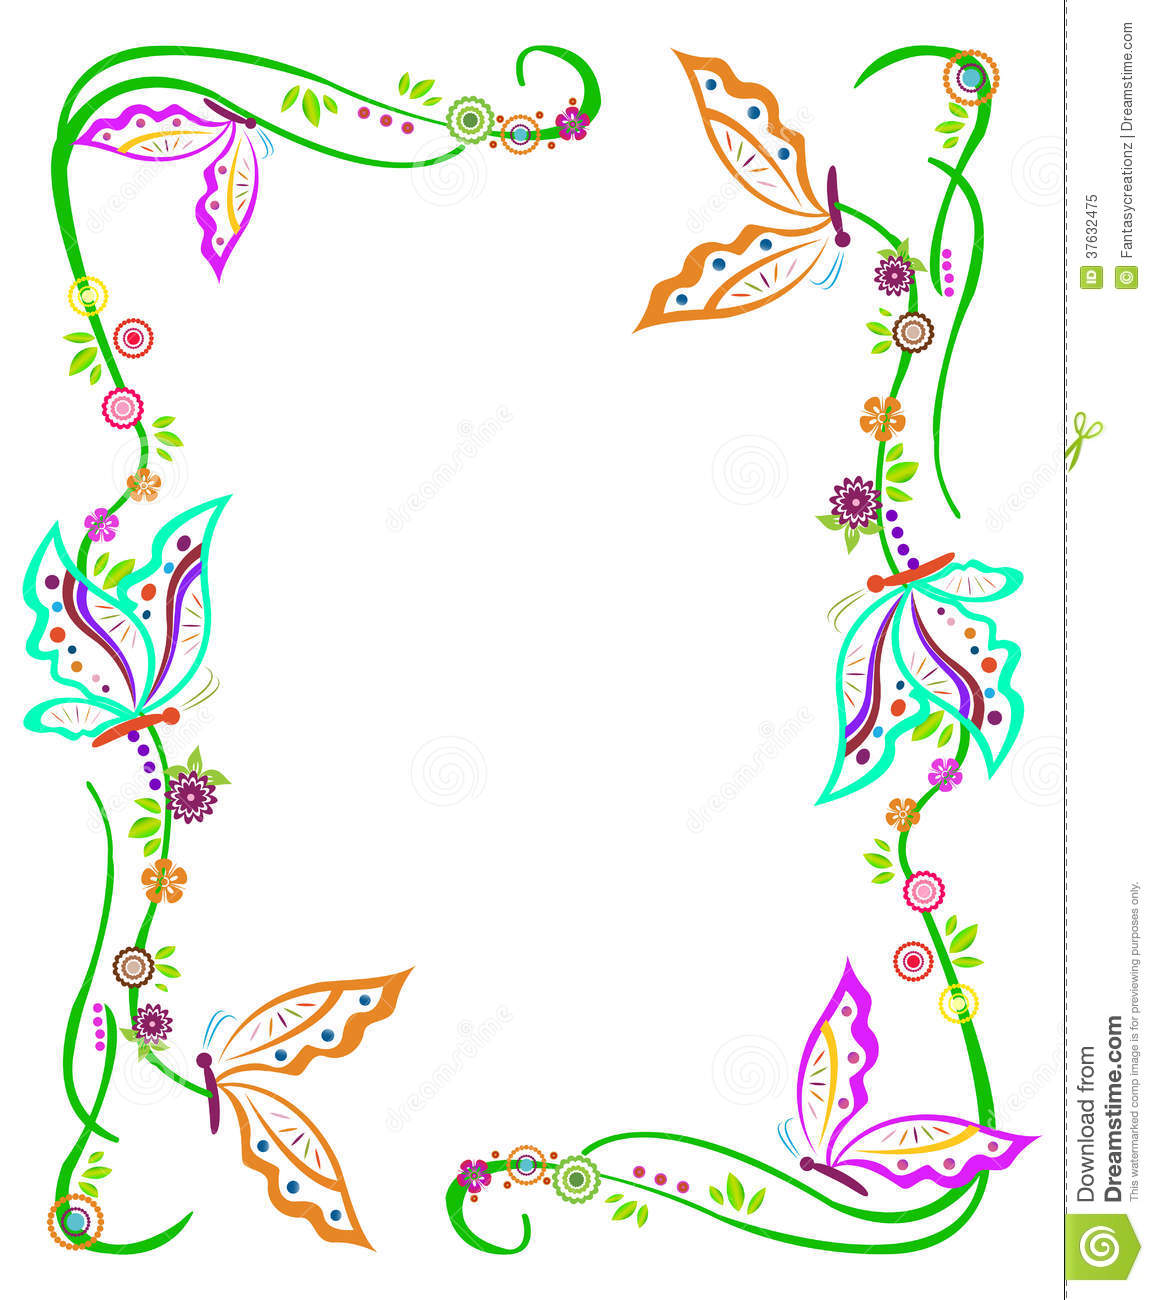 Green White Pink Girl Scout Wallpaper Butterfly Border Royalty Free Stock Photo Image 37632475